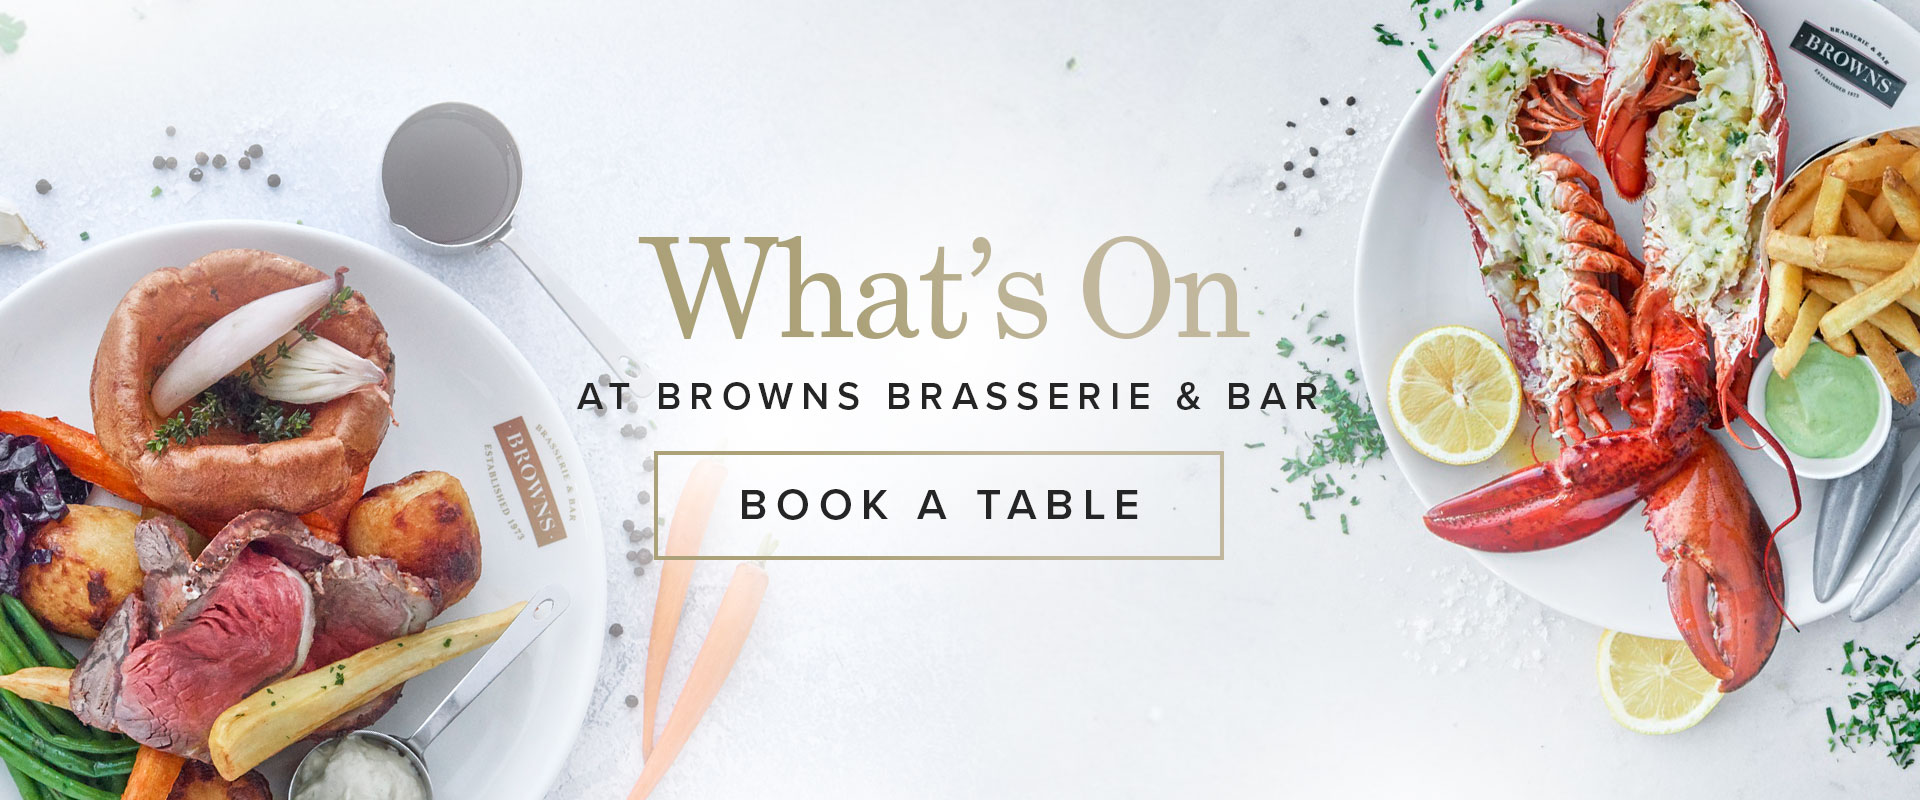 What's on at Browns Manchester